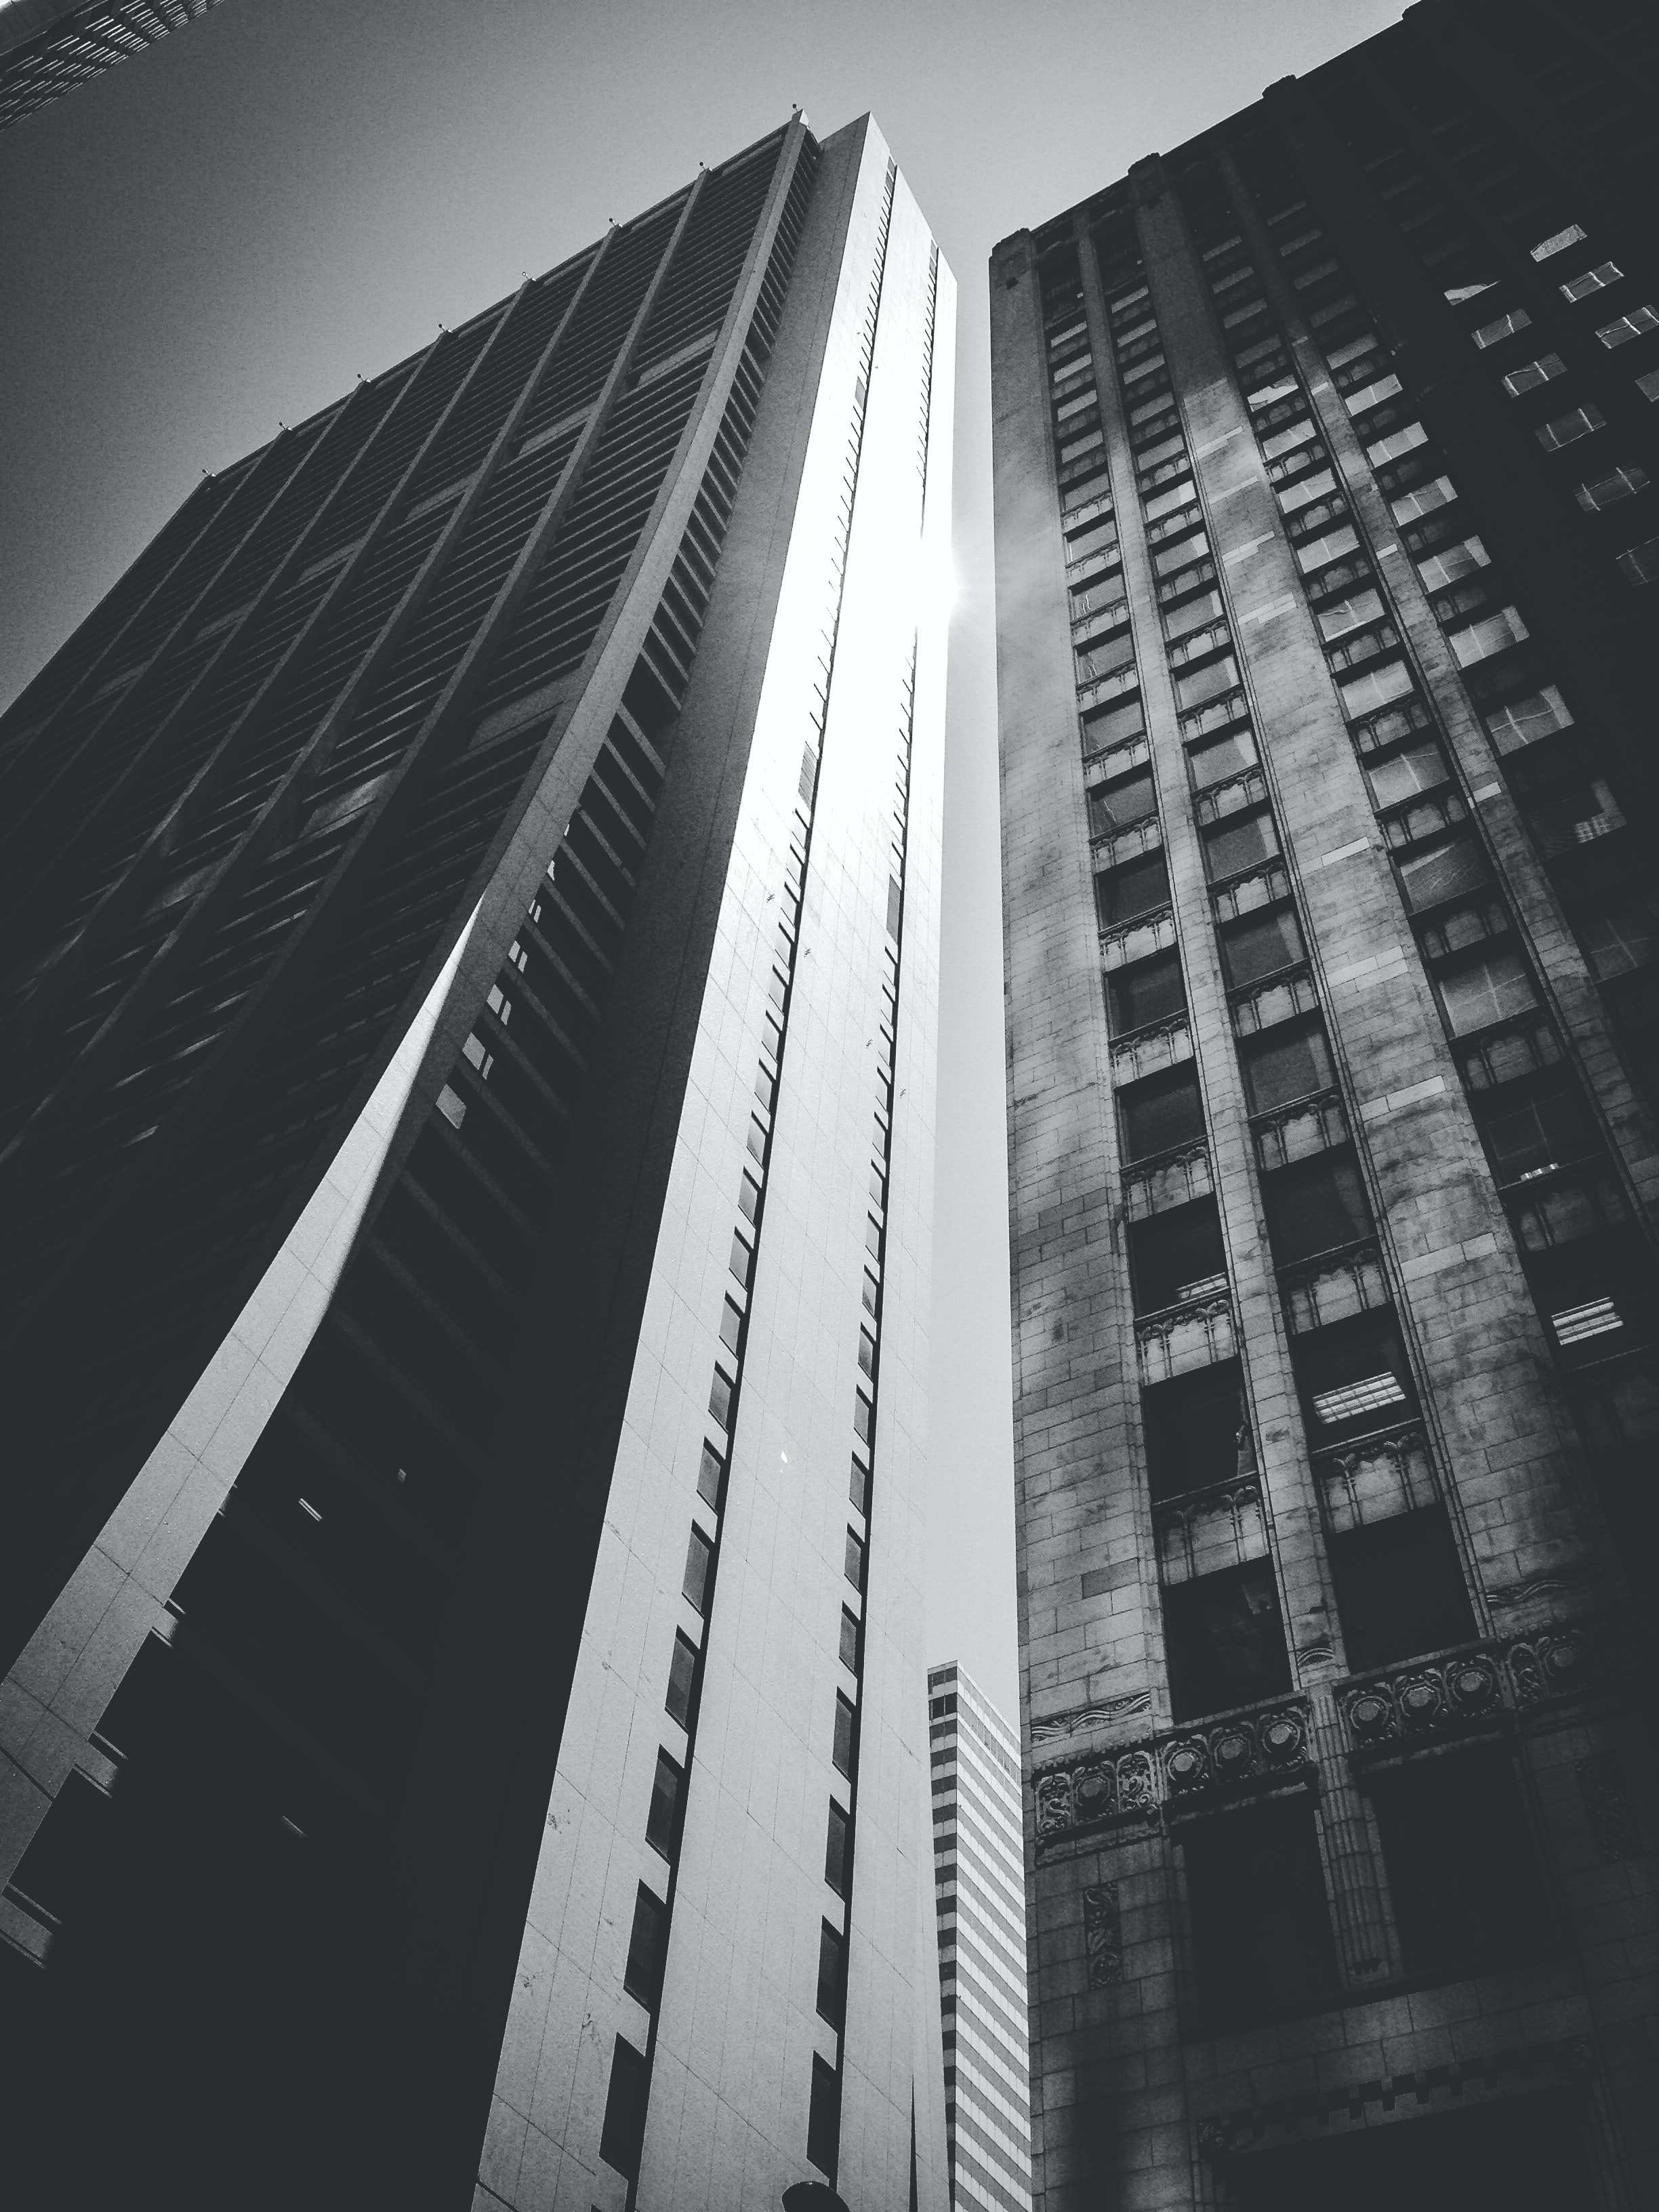 lower angle photography of high rise building